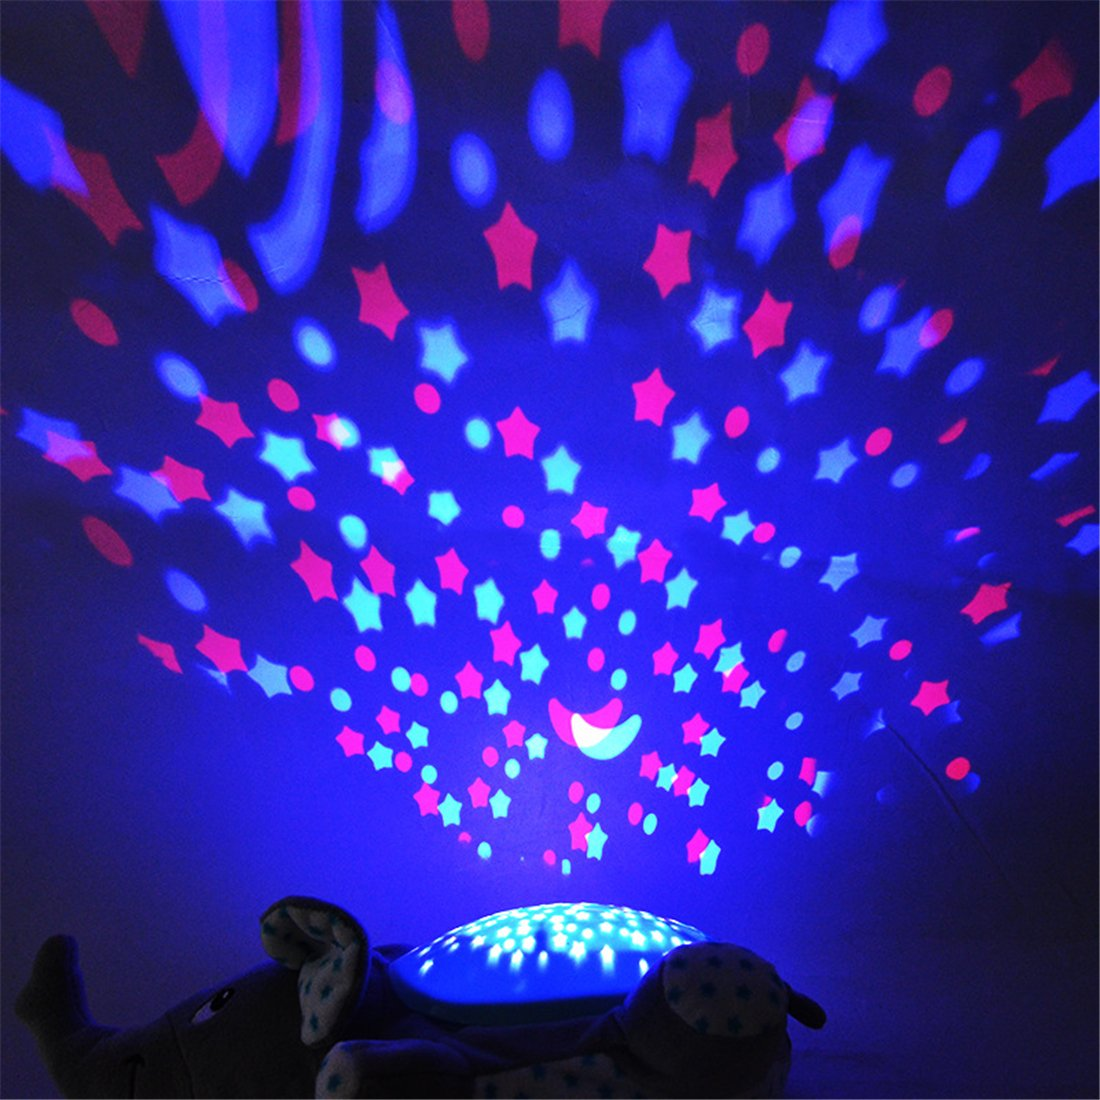 ESOCOME Baby Plush Hippo Toy Hypnotic Star and Moon Light Projector with Melodies -Animal Doll Sleep Soother Starry Night Light for Baby Infant Kids Nursery by ESOCOME (Image #4)